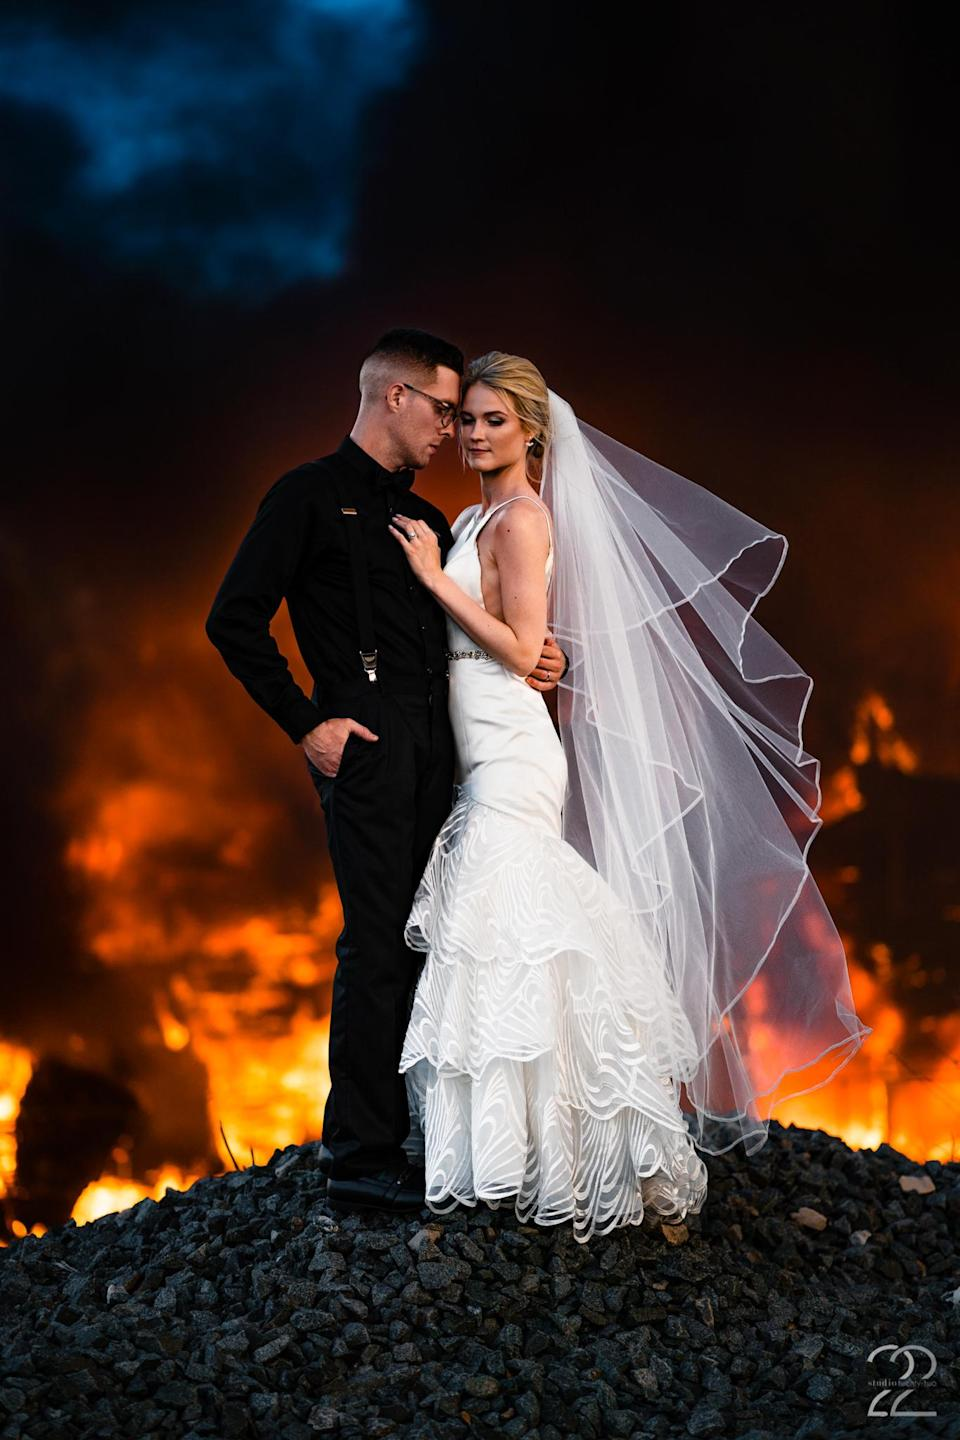 Dillon and Corrie Jameson pose for breathtaking photos with a flaming background. (Photo: Studio 22 Photography, Destination Wedding and Engagement Photographer)